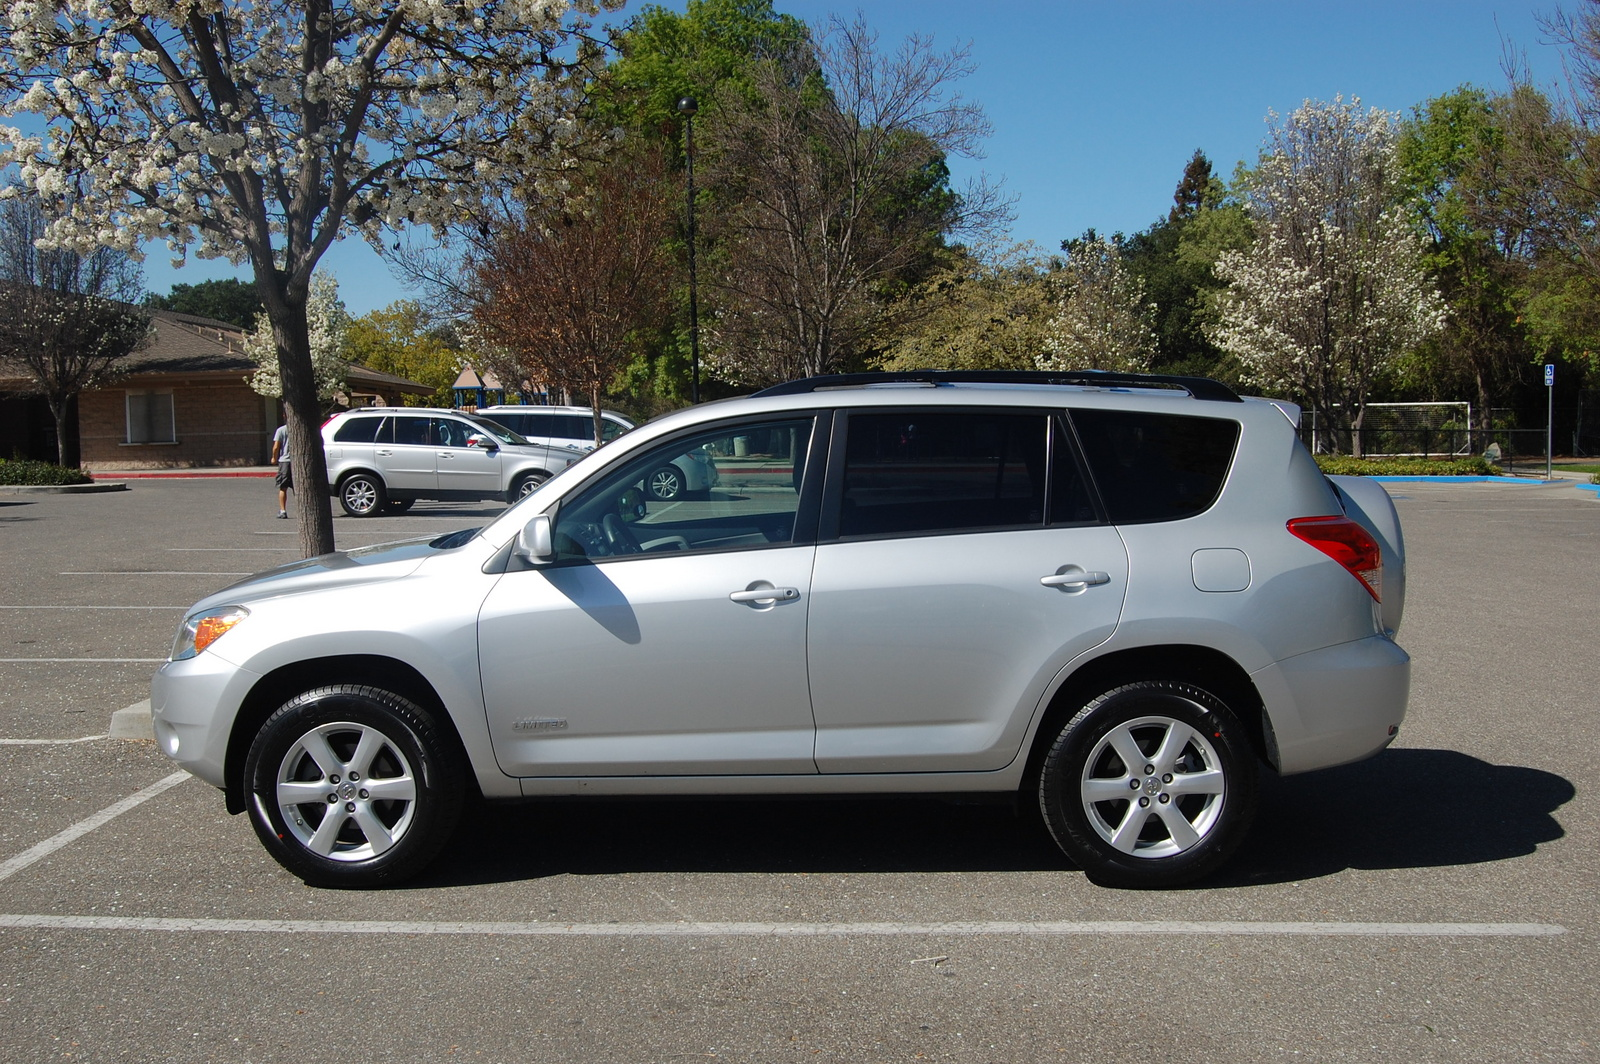 Camera Wiring Additionally Rear View Diagram Likewise 2009 Toyota Rav4 Backup For Free Rav Limited V Awd Pic As Well In Addition Together With